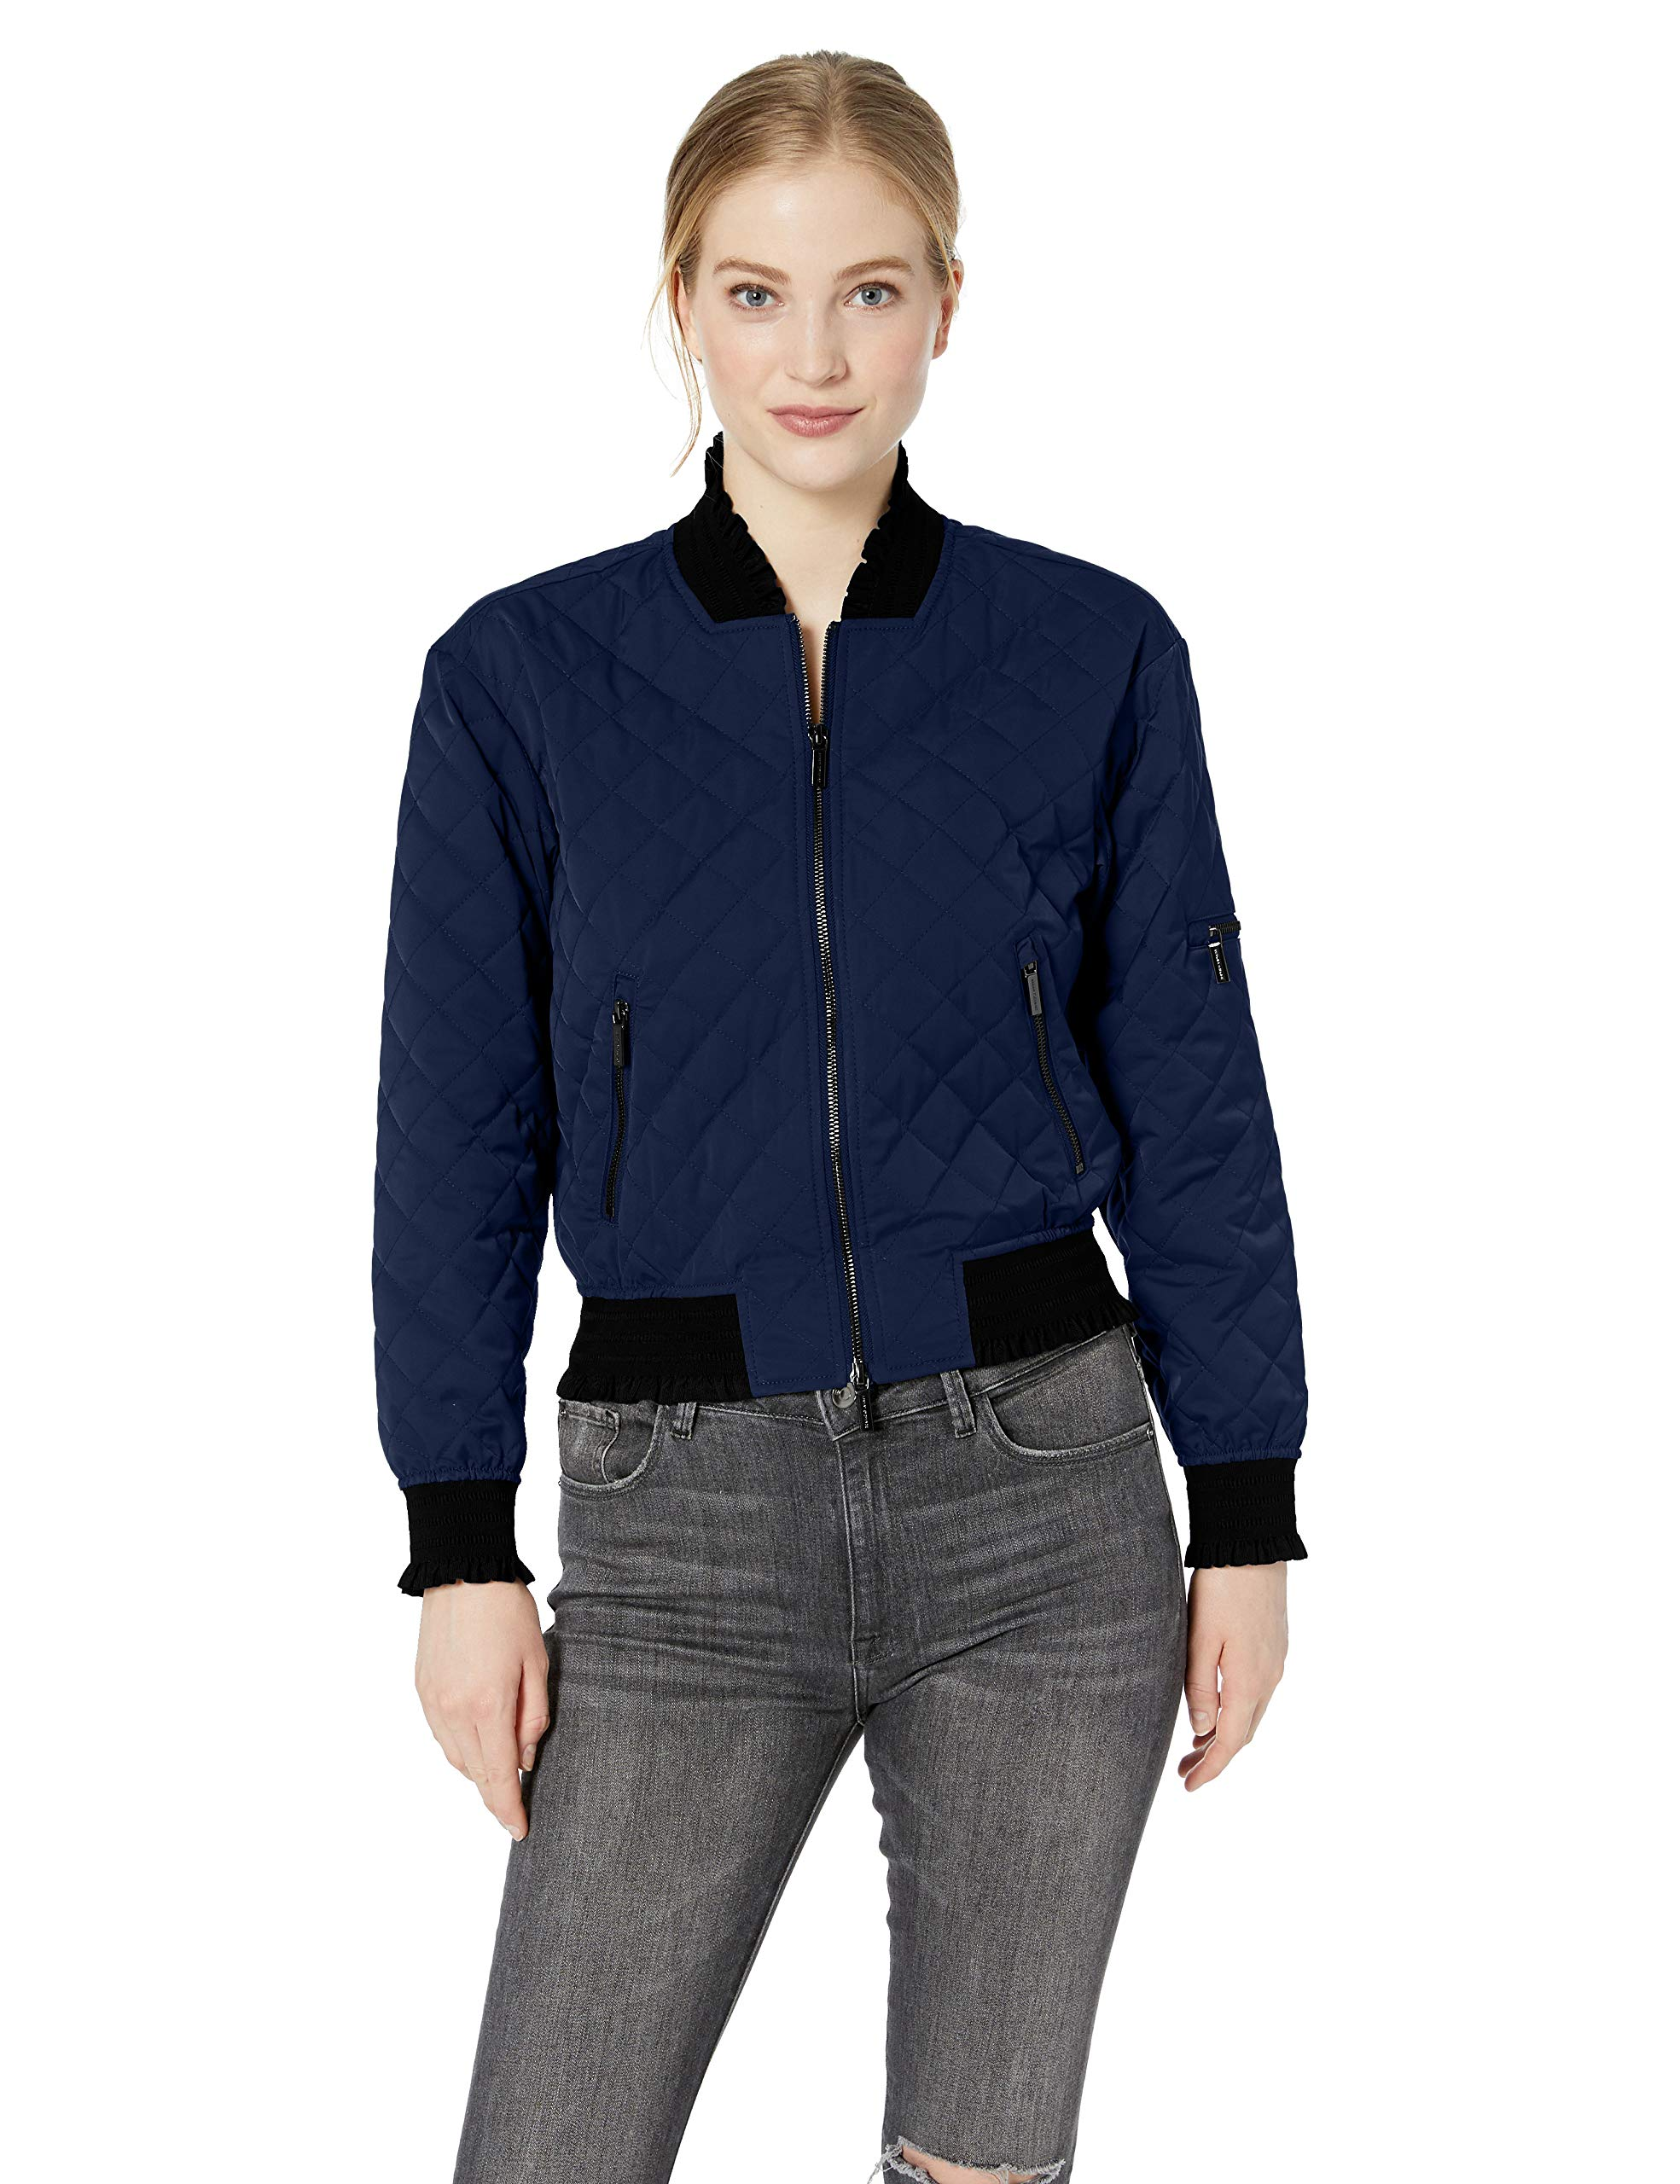 1567Medium Quilted Exchange VesteBleublue Femme Bomber Armani Moon oWQCBrxed